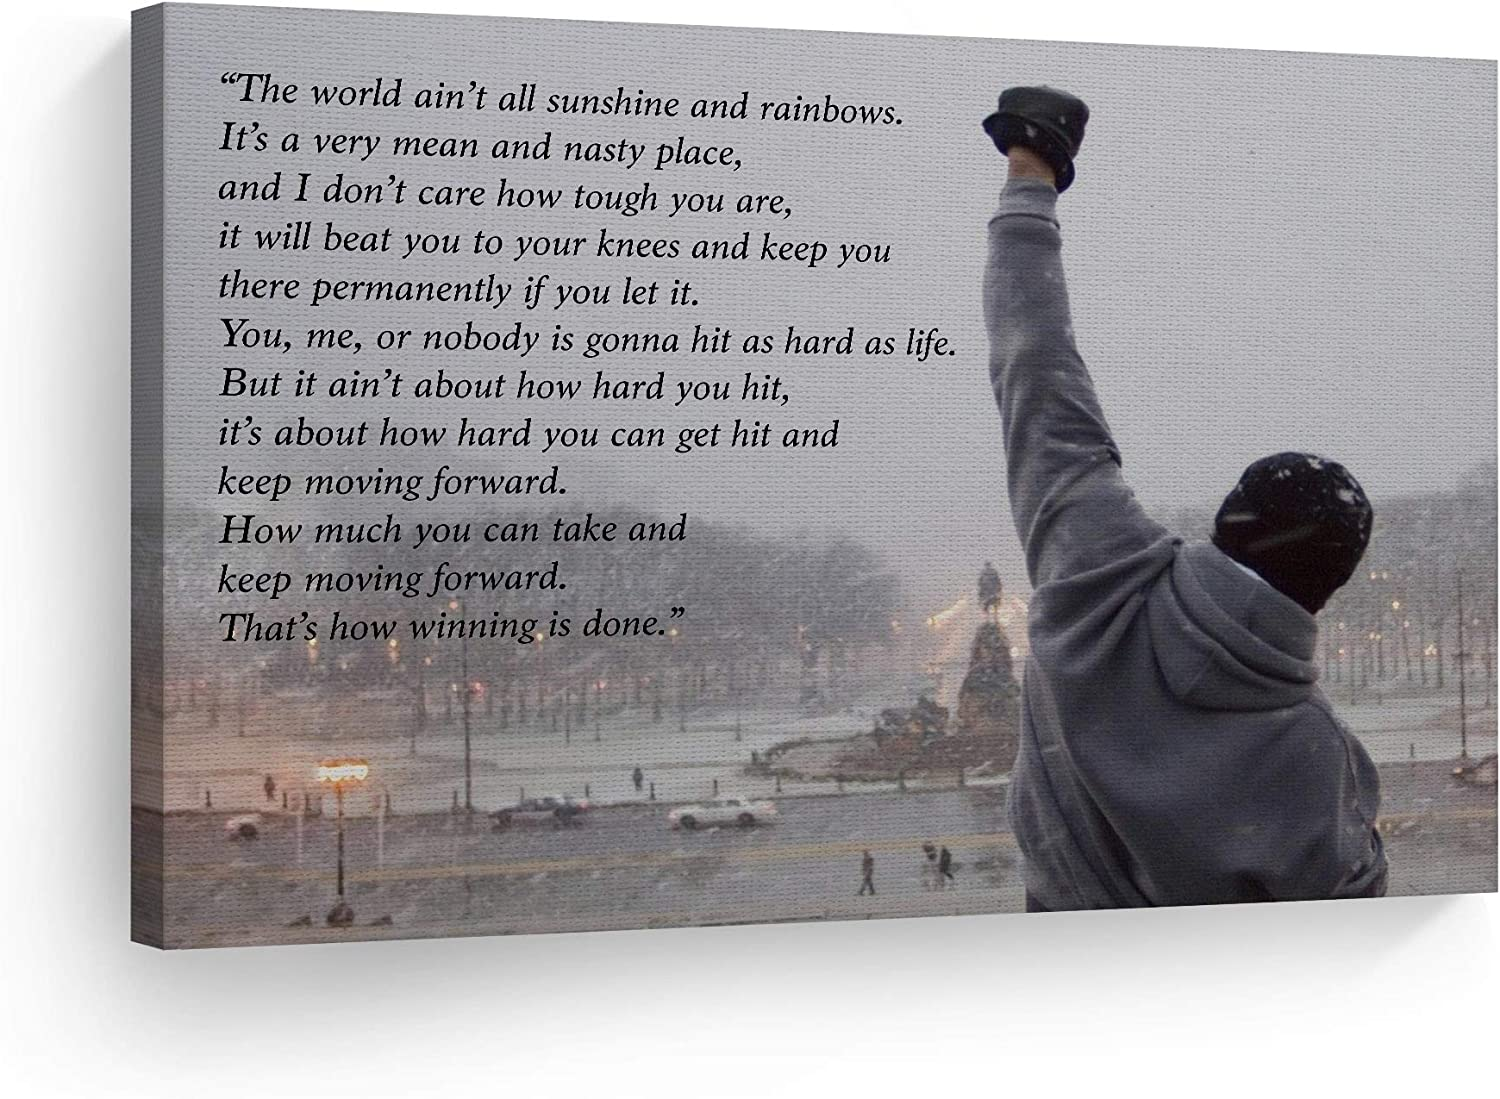 Smile Art Design Rocky Balboa Speech Canvas Print Motivational Quote Hope Artwork Boxing Sylvester Stallone Living Room Home Decoration Wall Art Ready to Hang- Made in The USA - 24x36